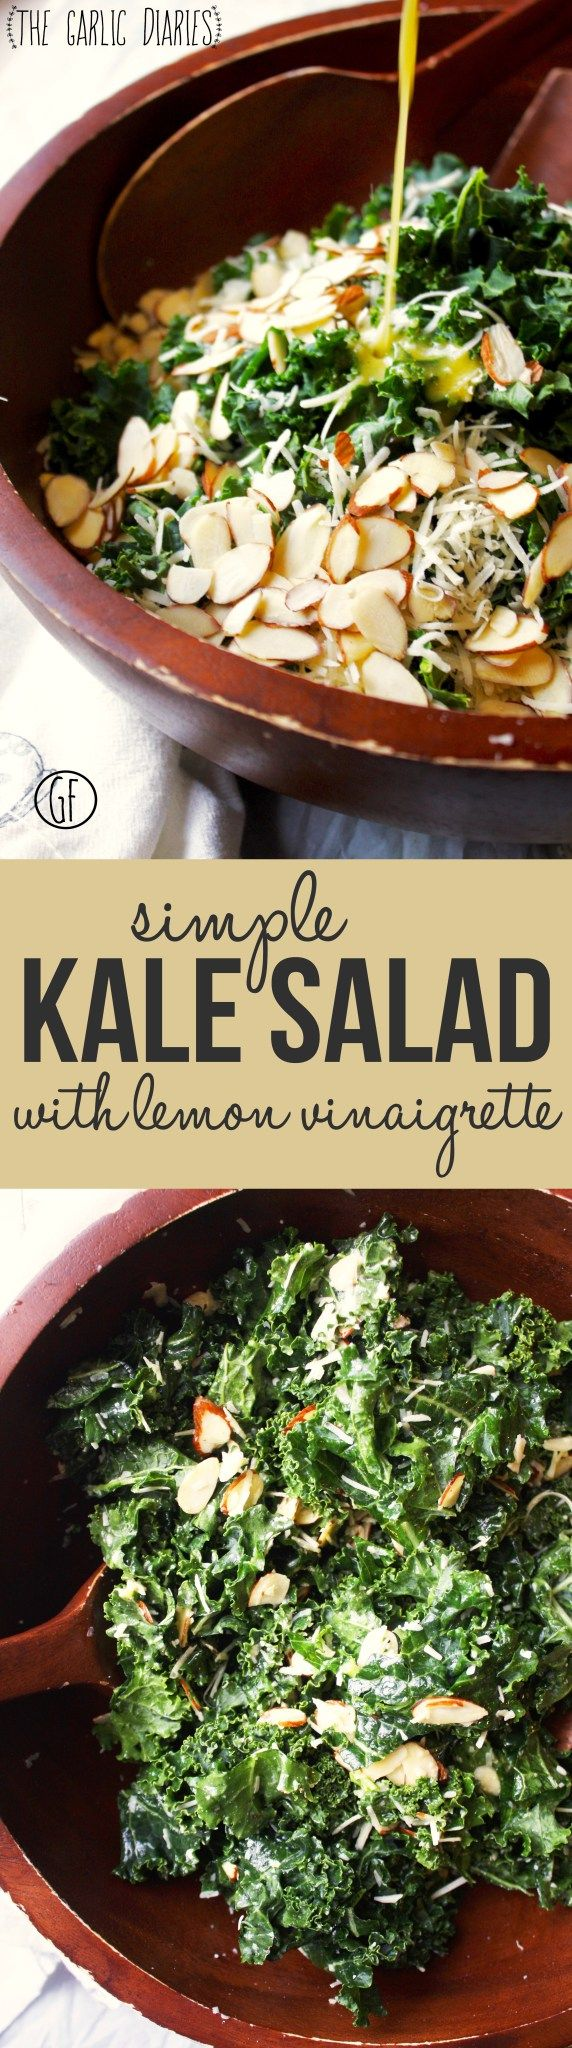 Simple Kale Salad With Lemon Vinaigrette  If You Think You Are A €�raw Kale